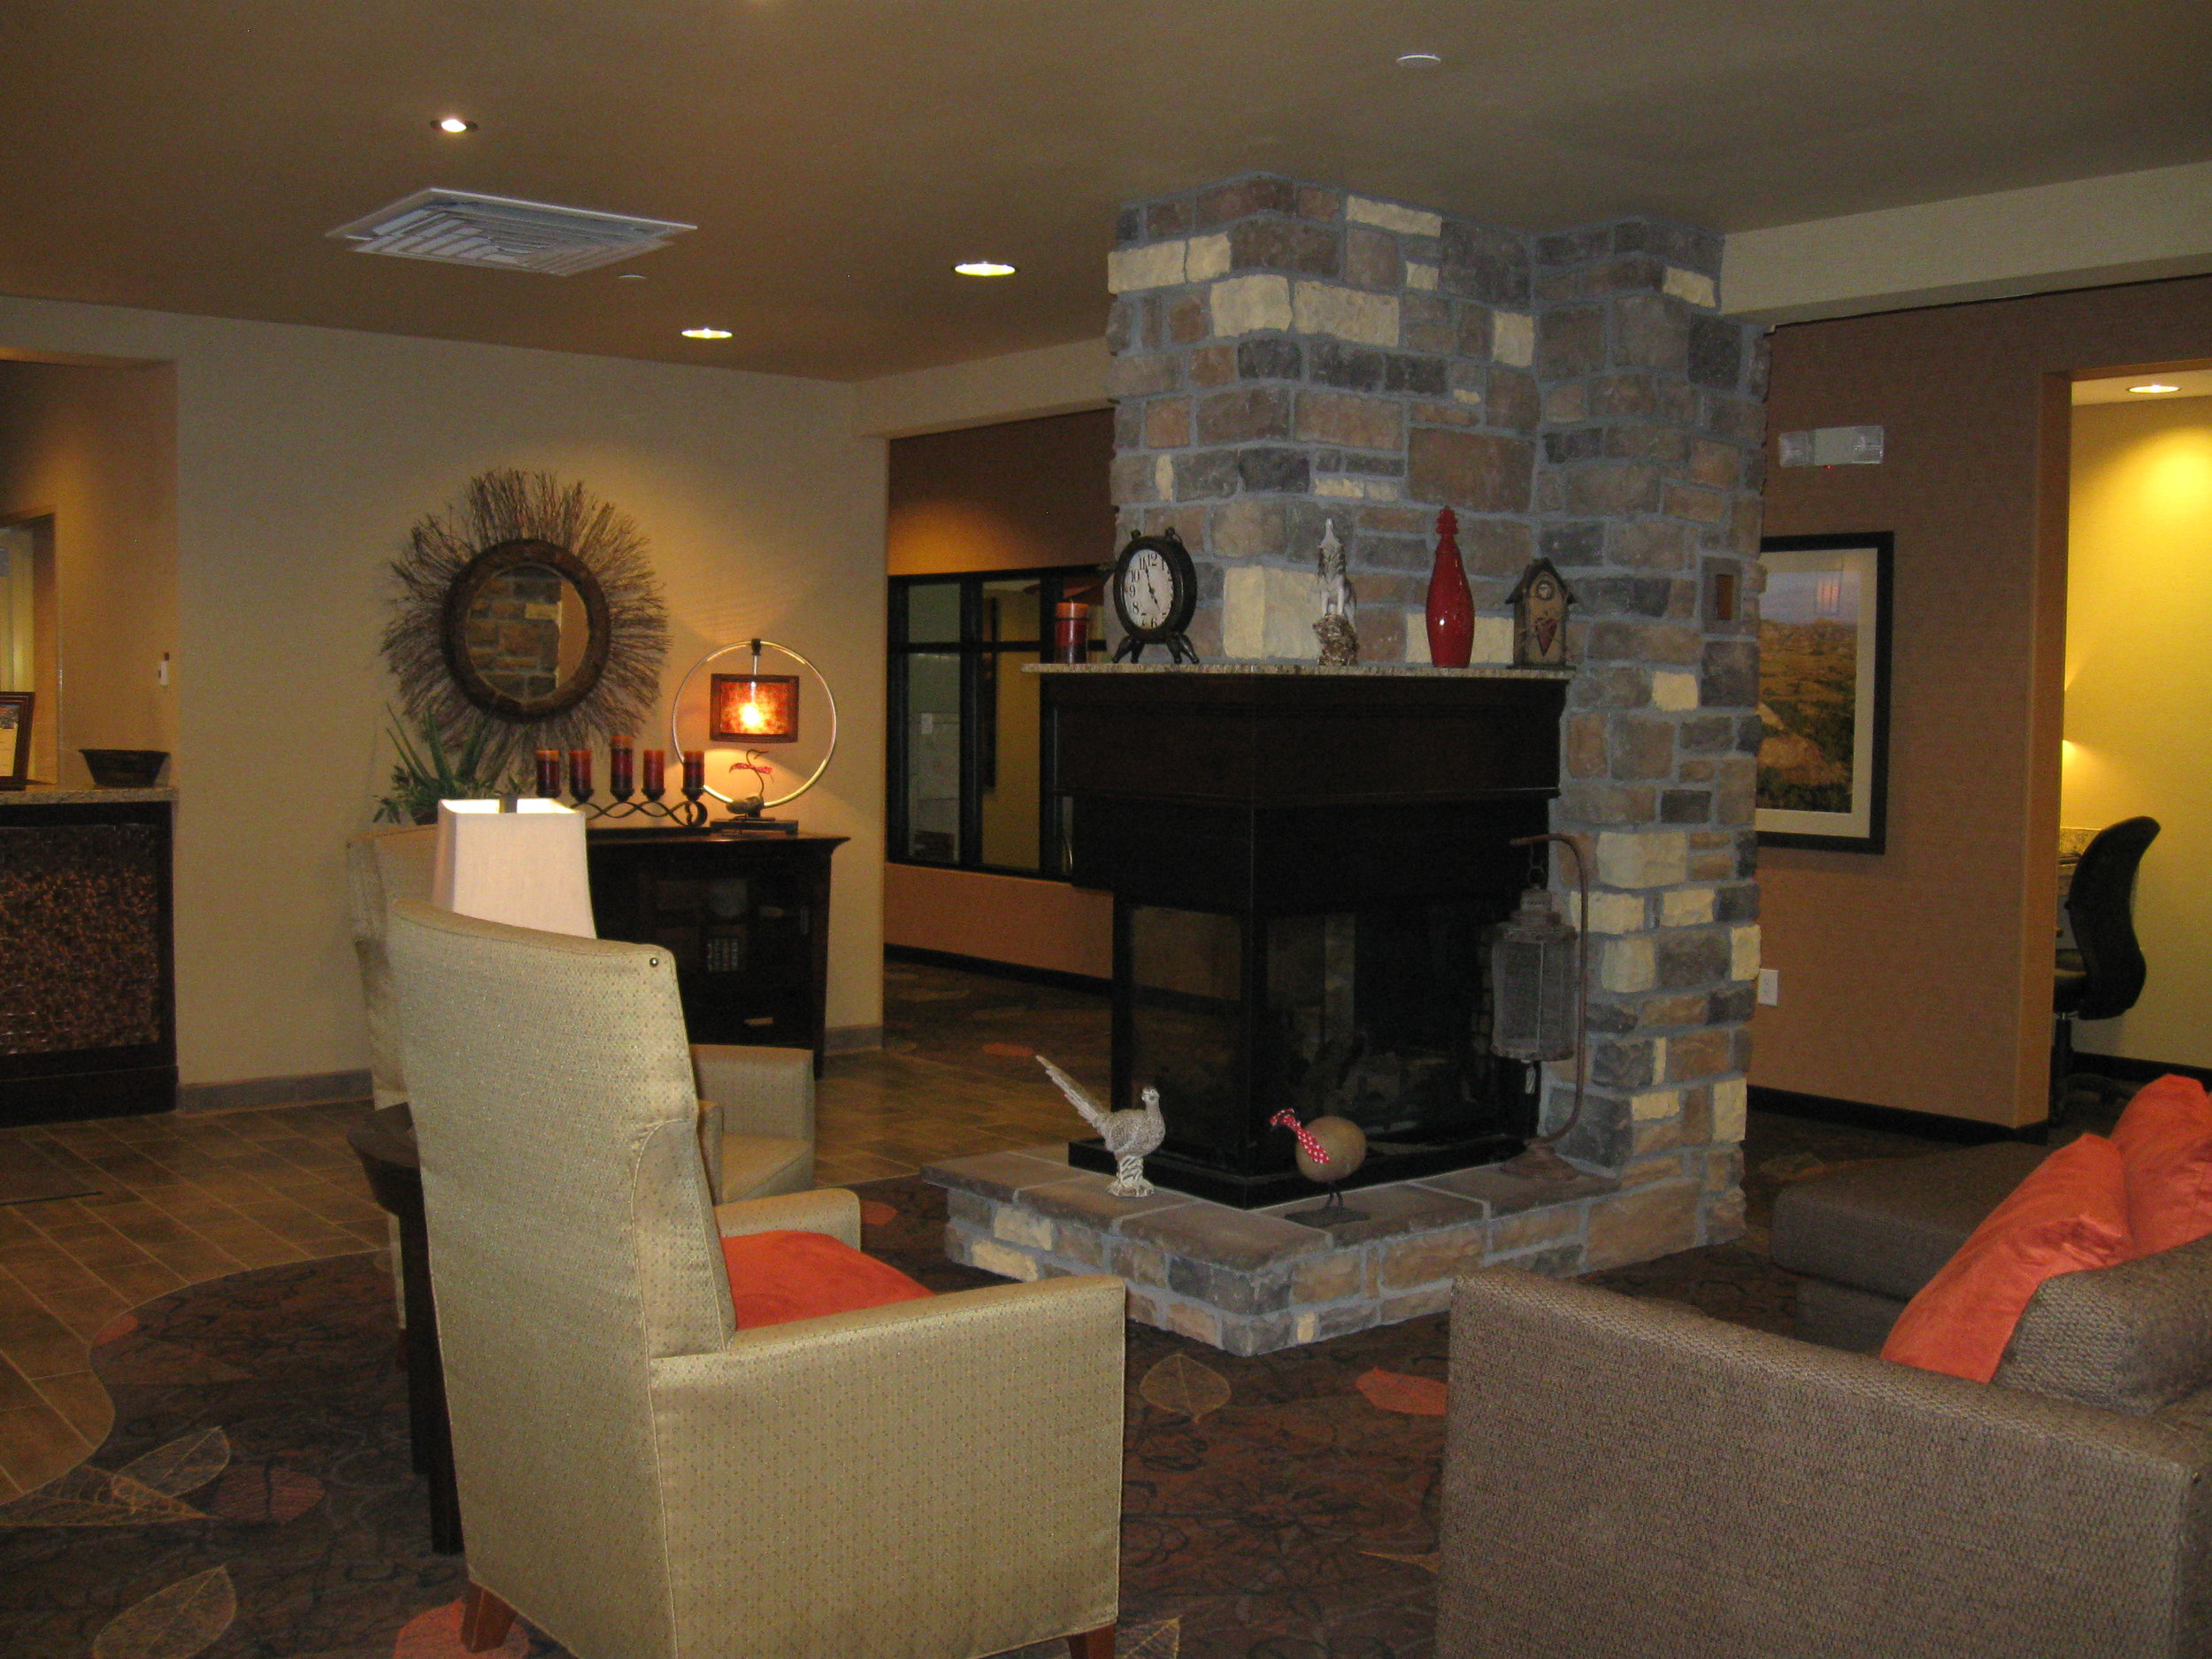 Seating area in the Little Missouri Inn & Suites in Watford City, ND